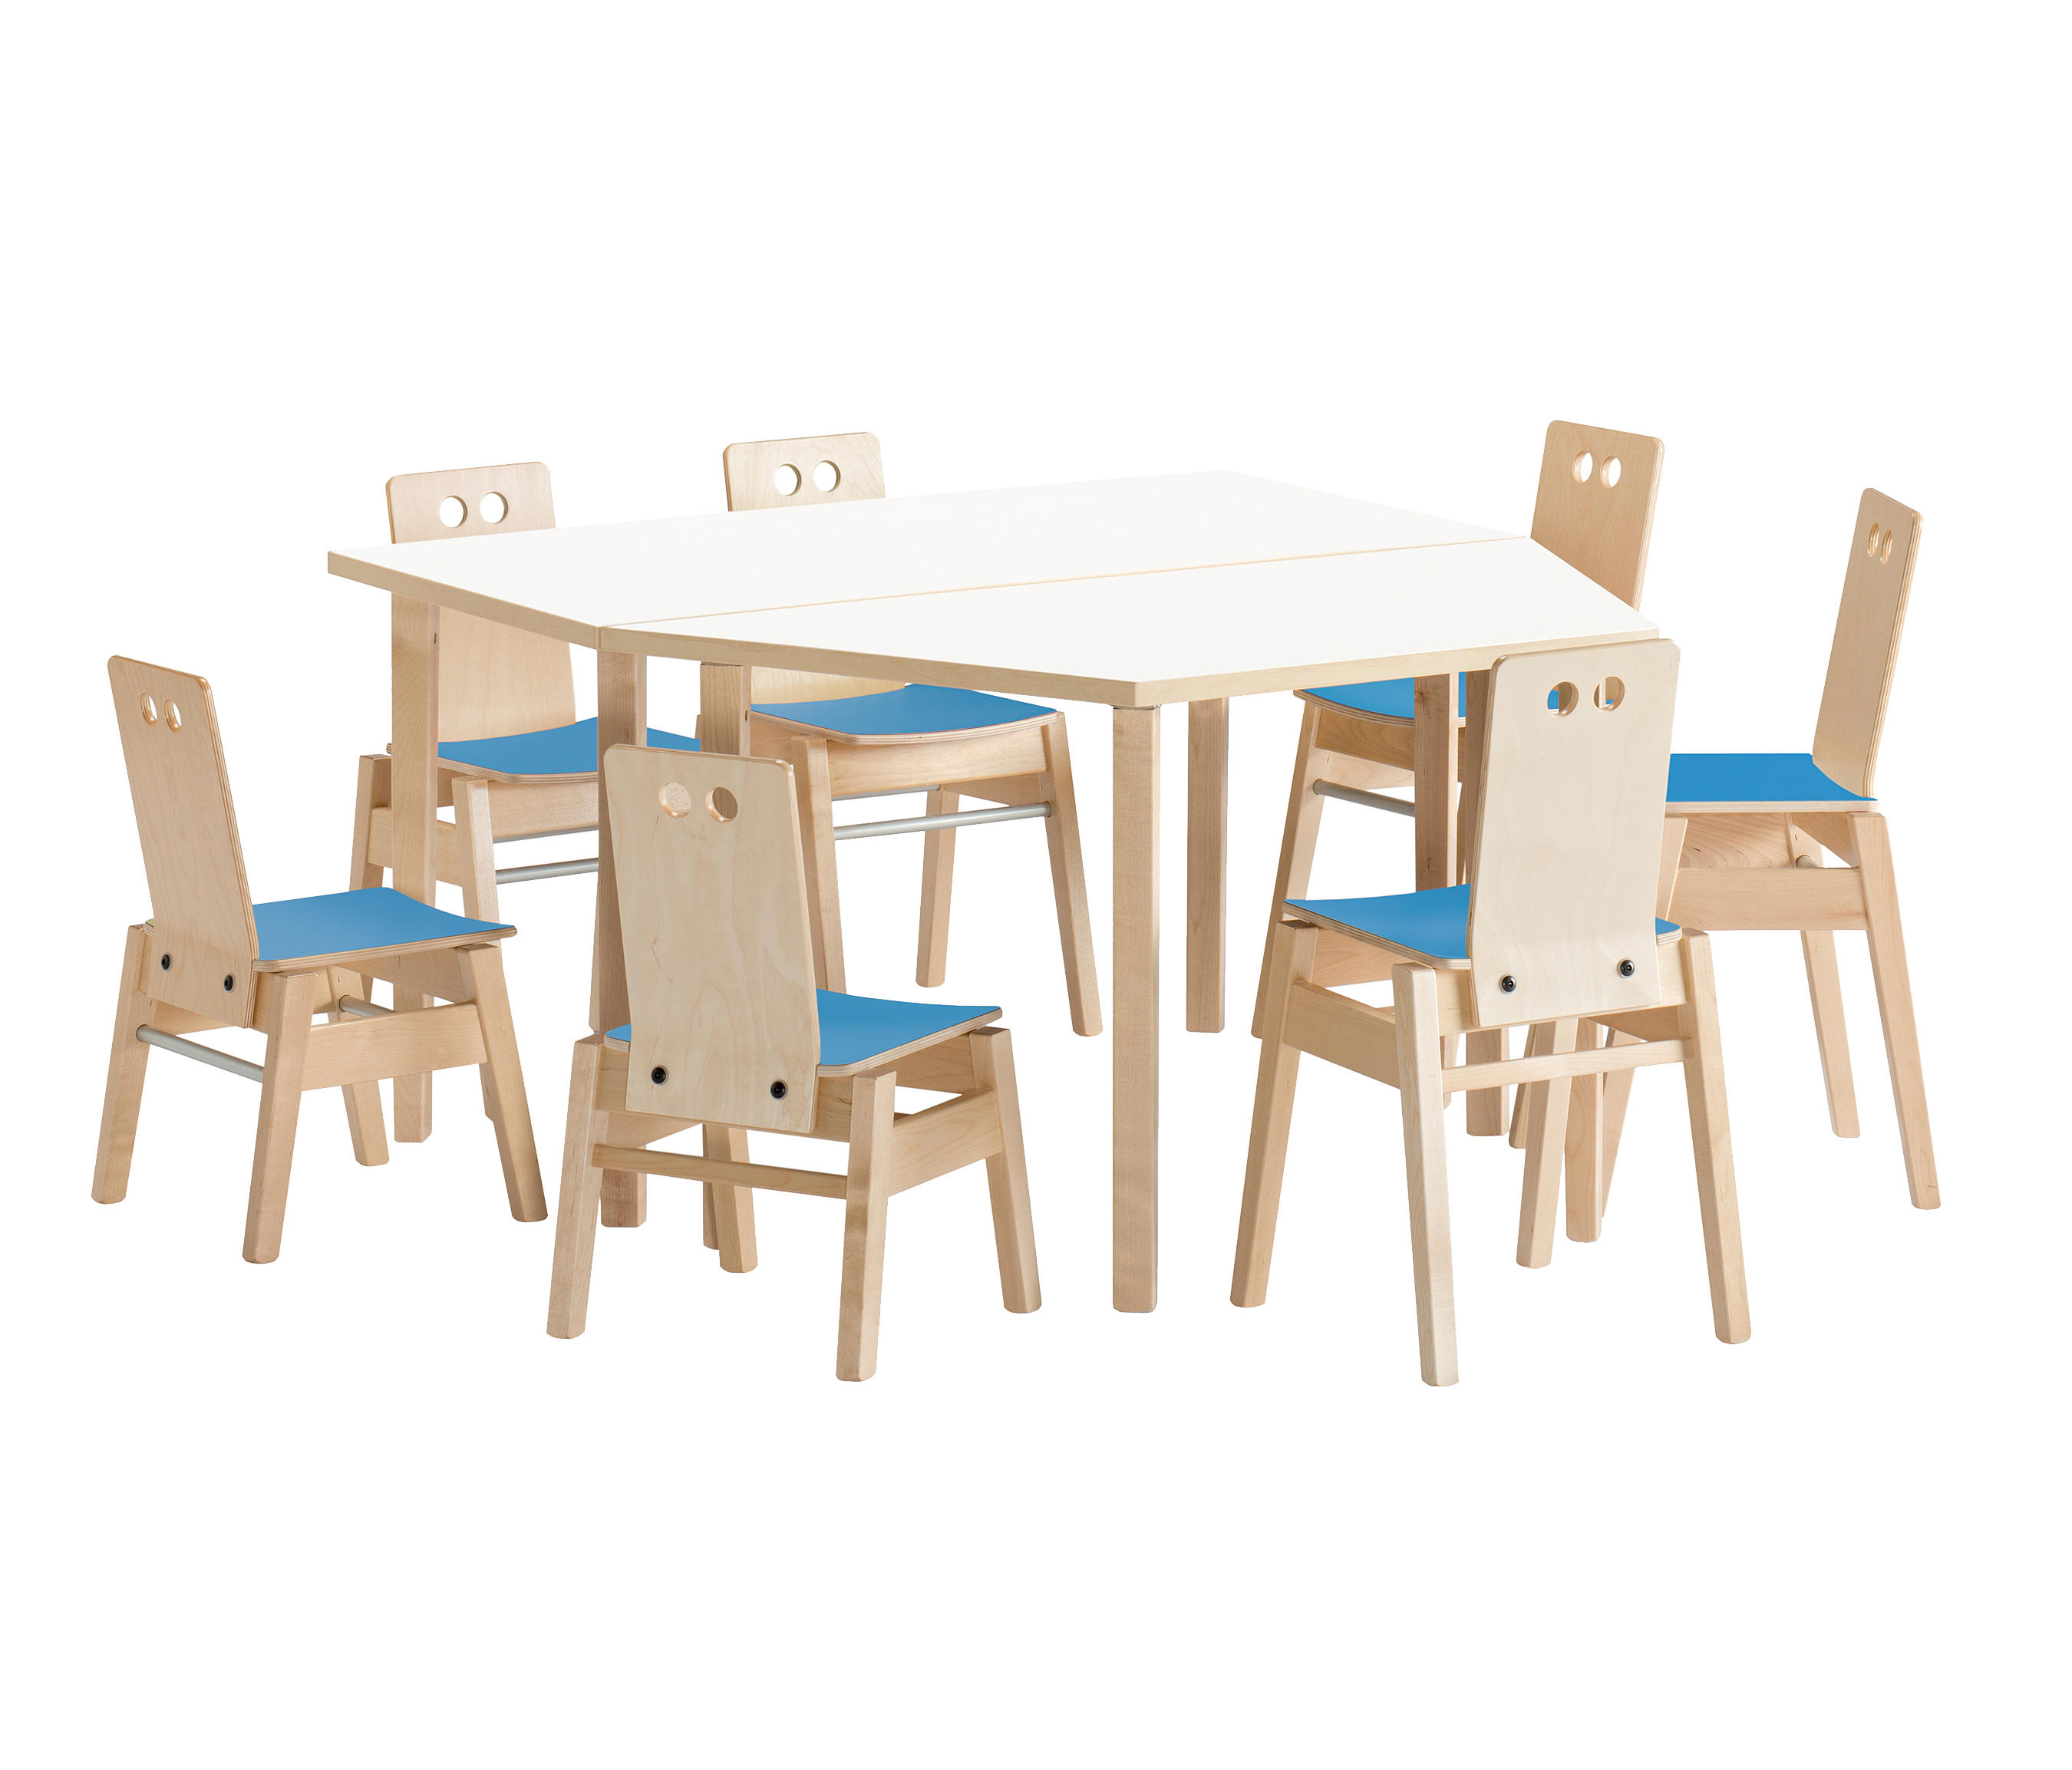 ... Chair For Children Low Otto OT300 By Woodi | Kids Chairs